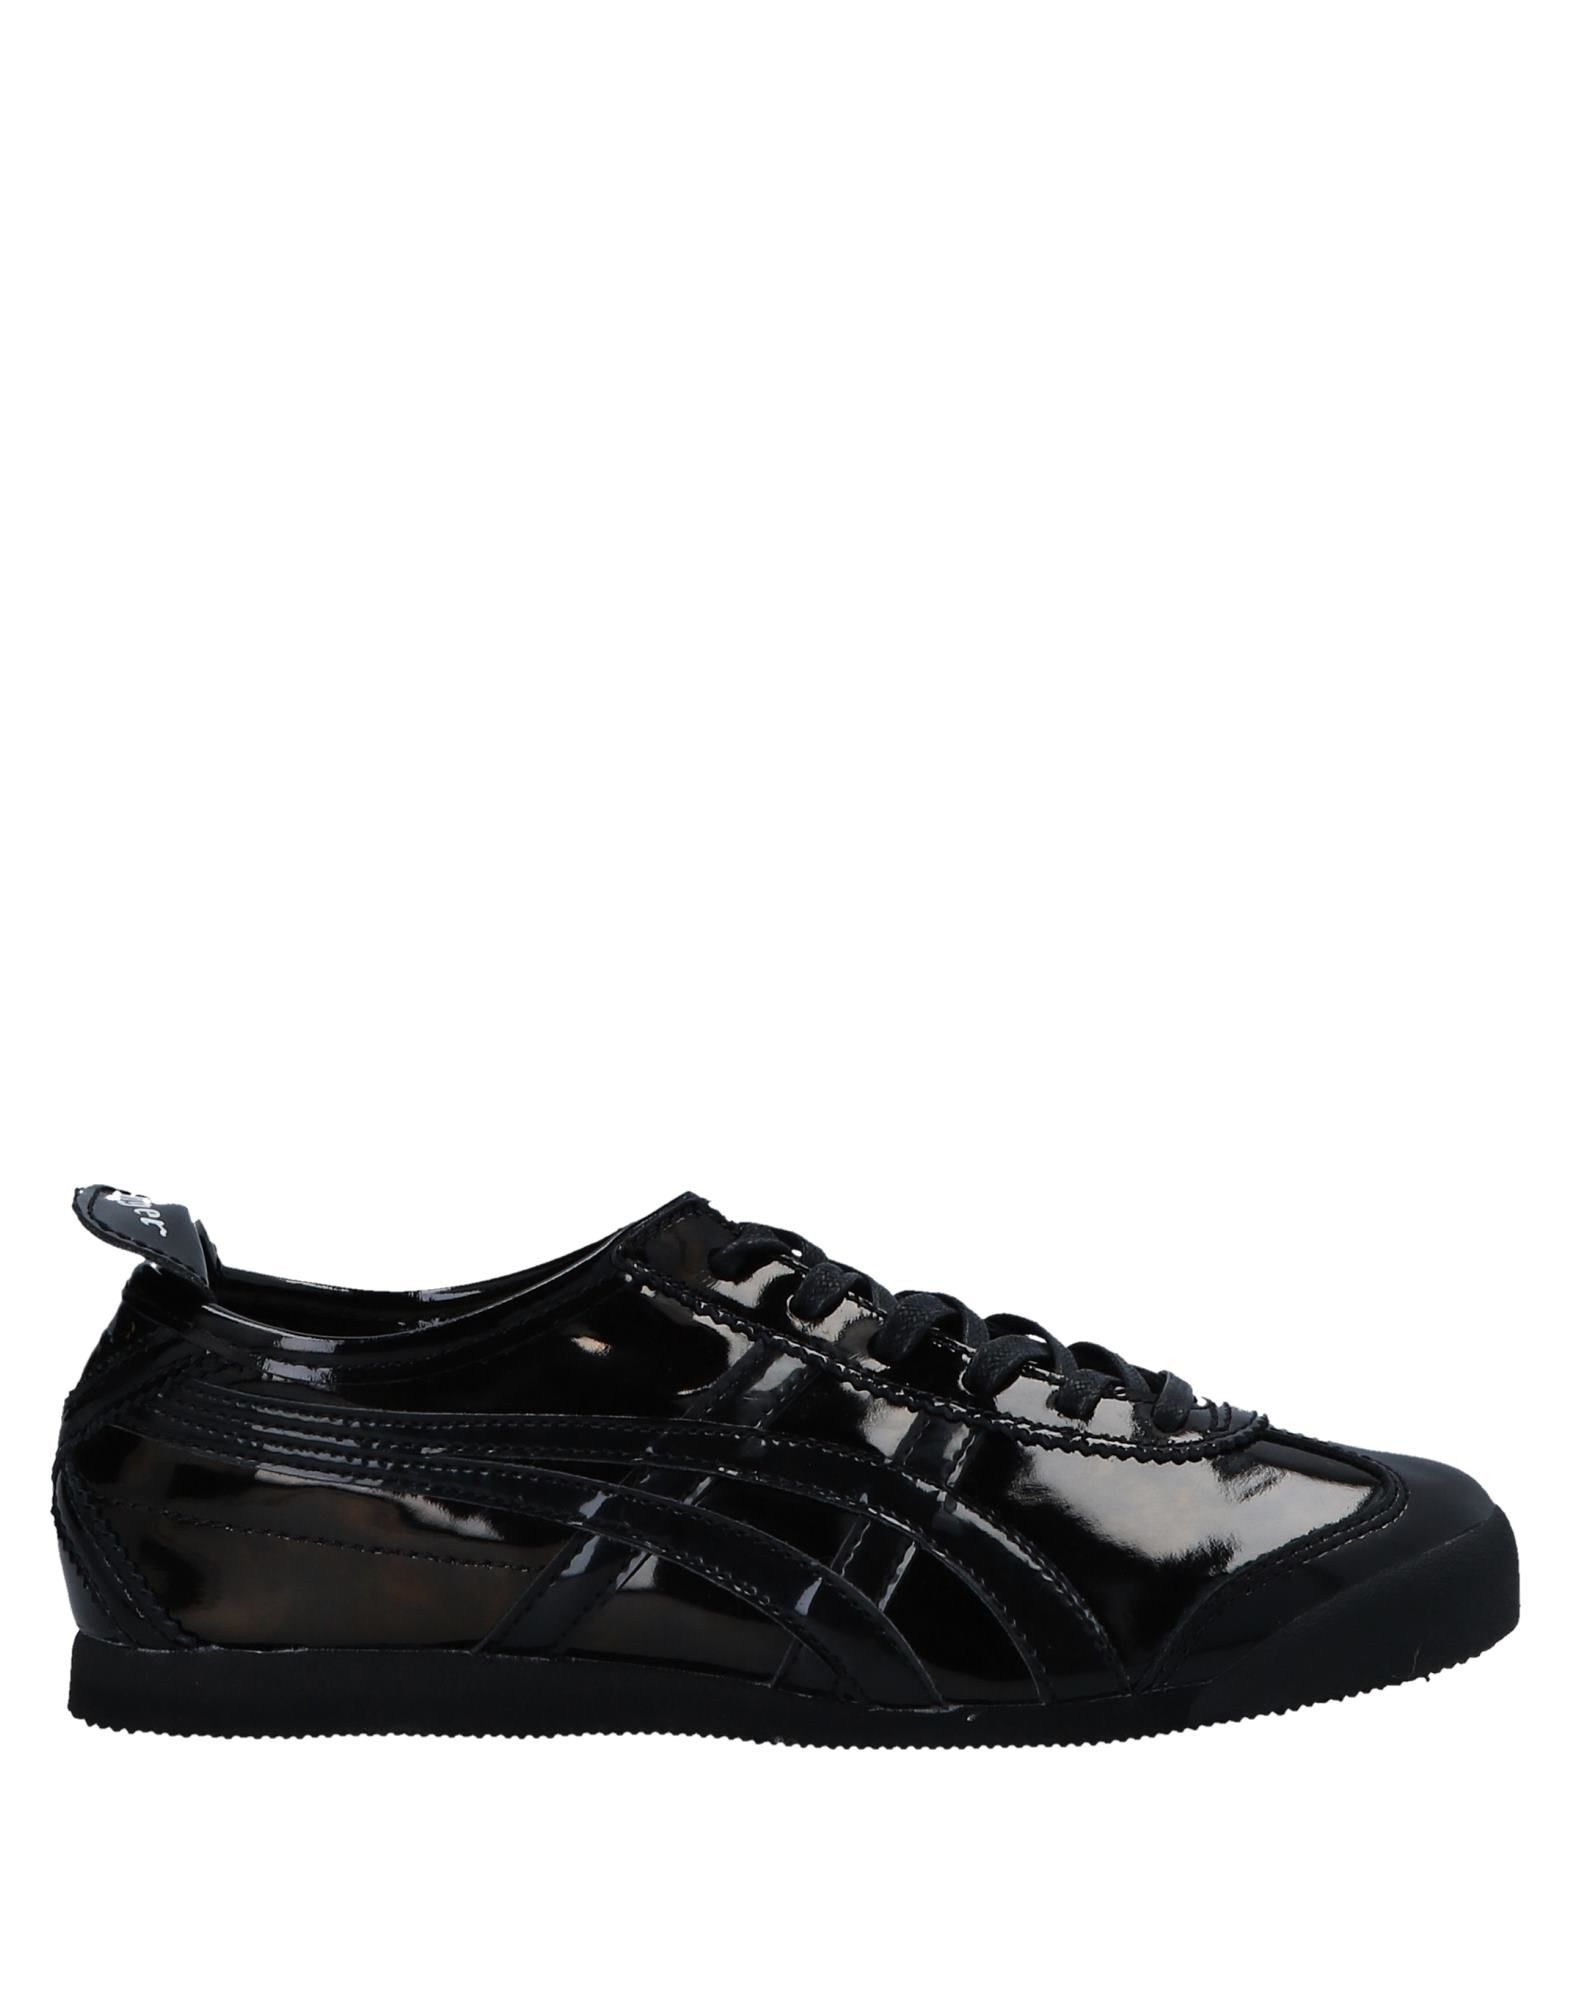 Onitsuka on Tiger Sneakers - Women Onitsuka Tiger Sneakers online on Onitsuka  Canada - 11558418GG 1f9950